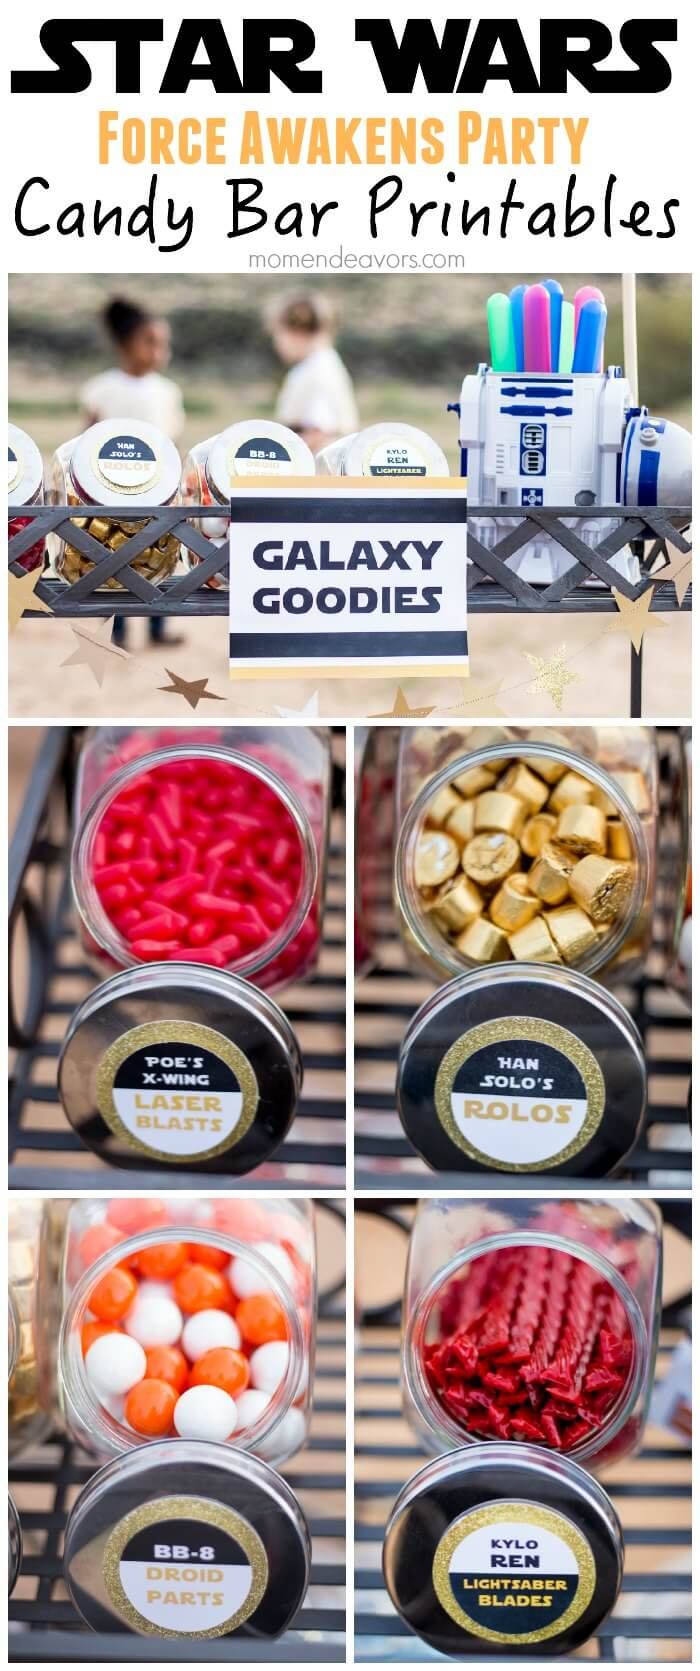 Star-Wars-Force-Awakens-Party-Candy-Bar-Printables